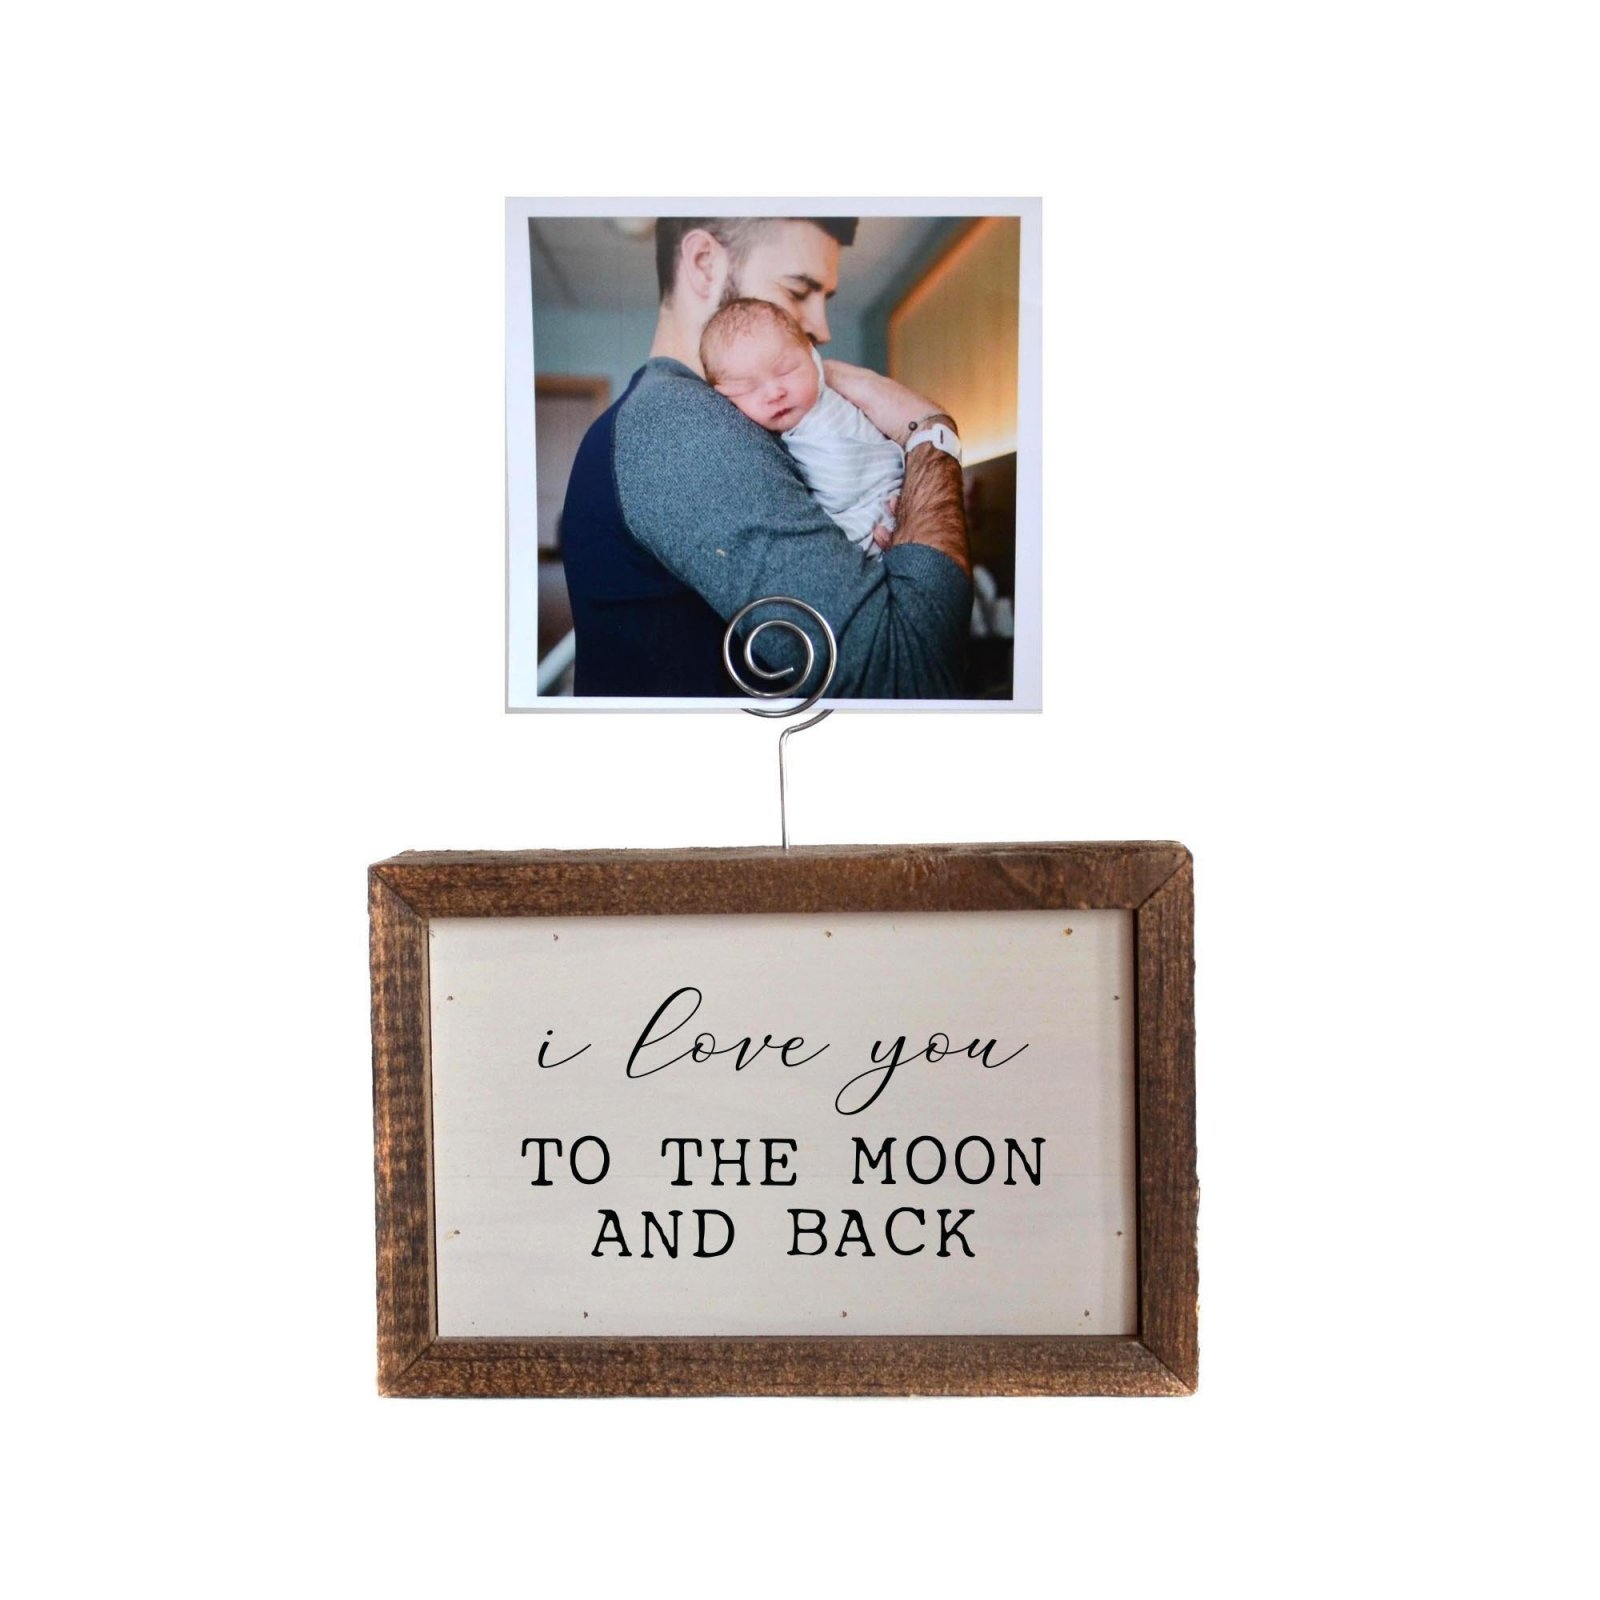 I Love You to the Moon and Back Picture Block with Wire Picture Holder - 6 x 4 x 2 - by Driftwood Studios